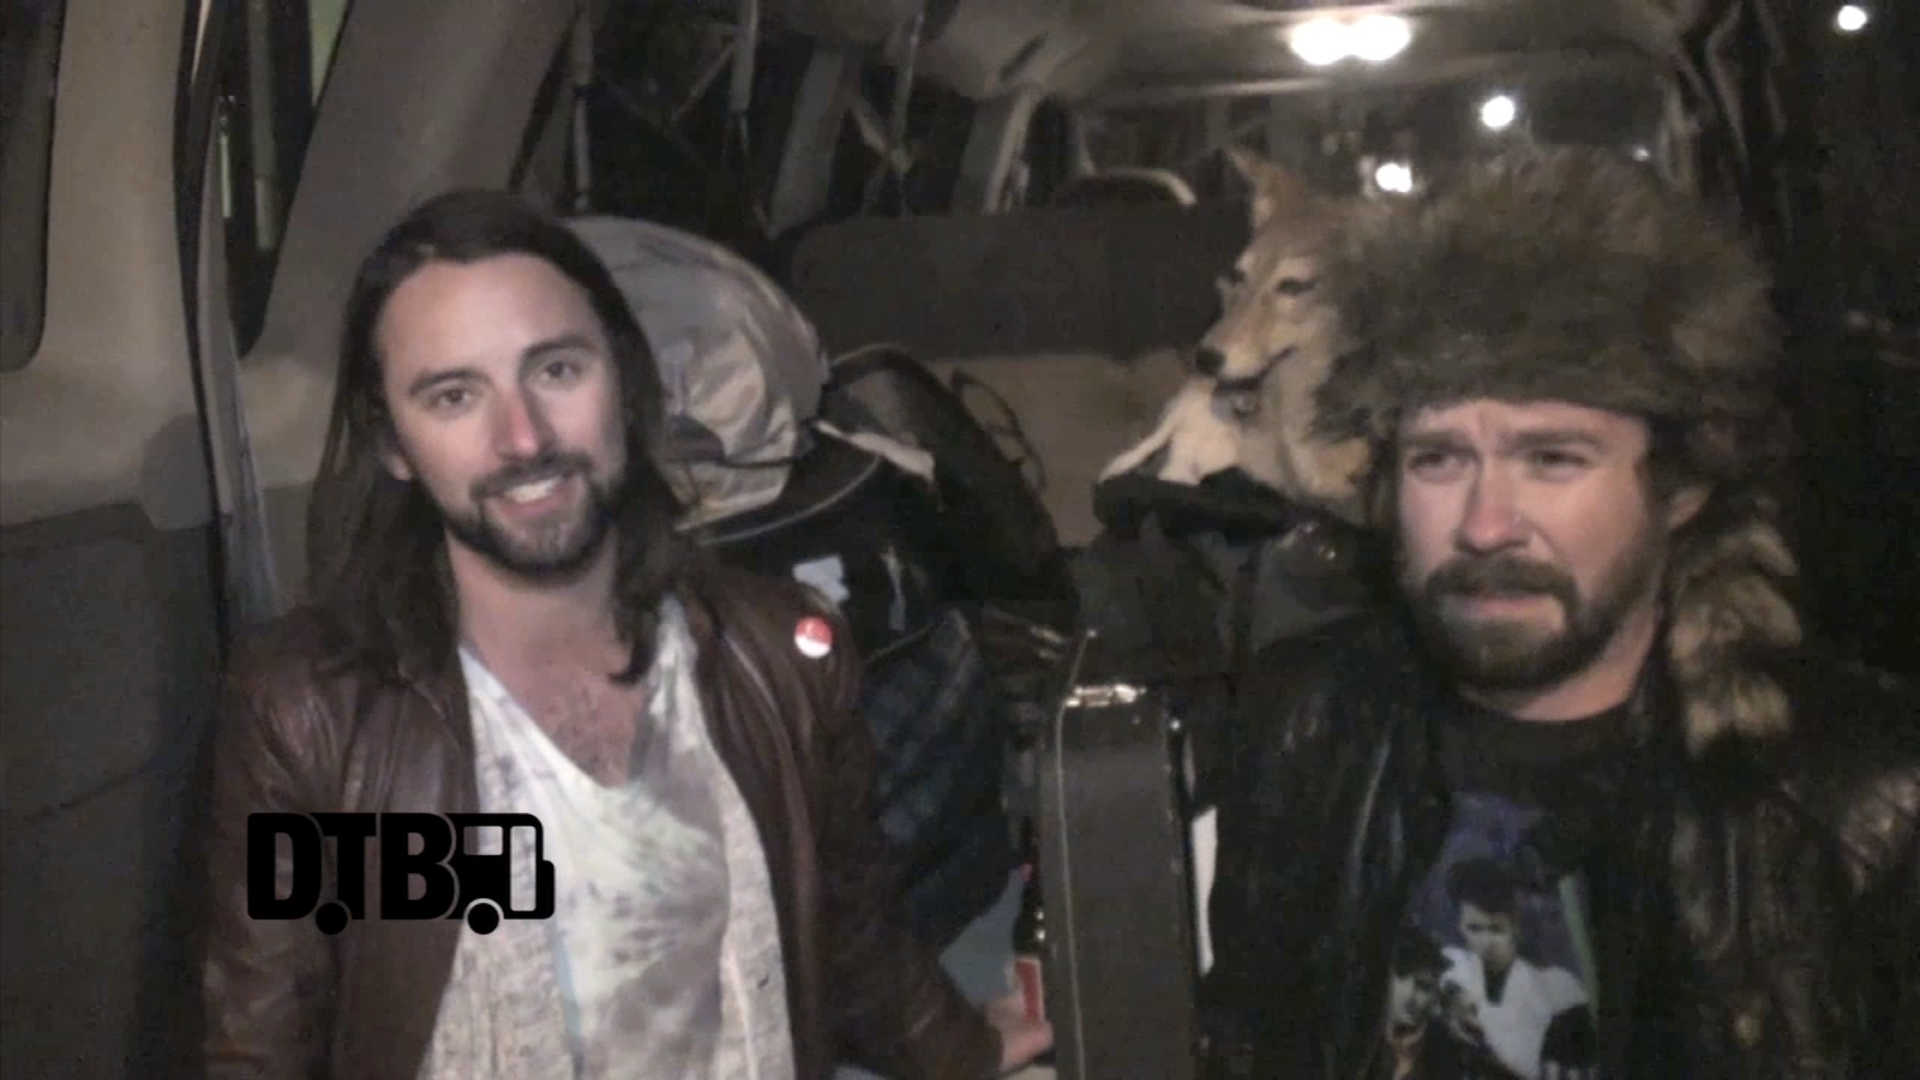 Bend Sinister – CRAZY TOUR STORIES [VIDEO]